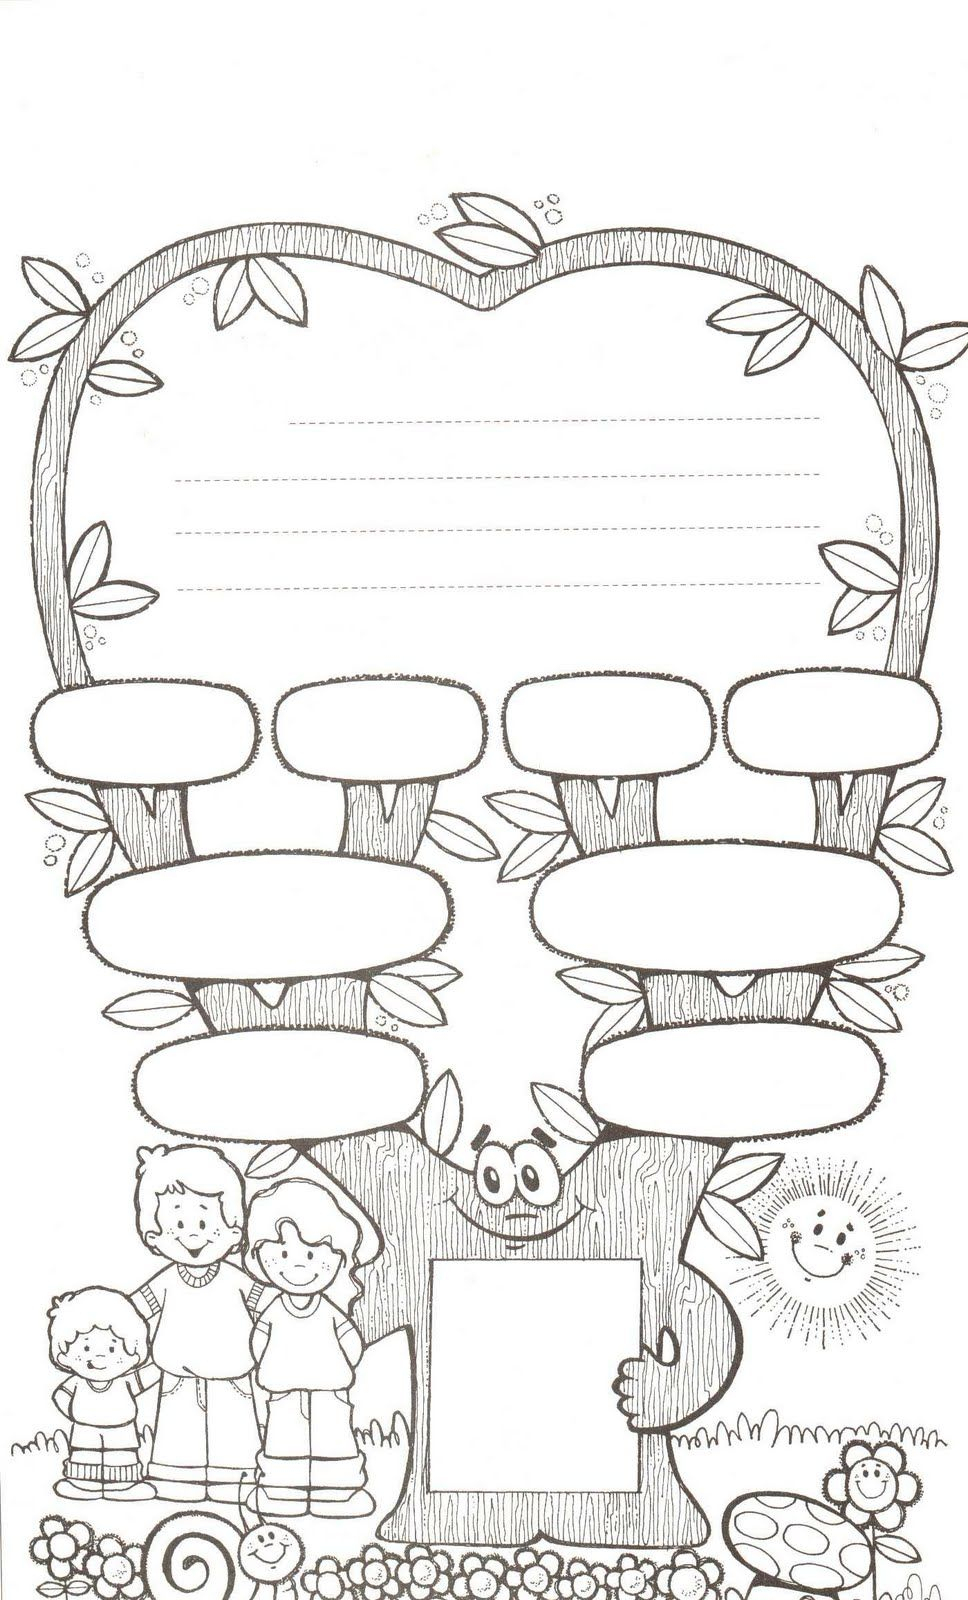 Family Tree Worksheet Printable … | Esl Worksheets | Famil… | Family Tree Worksheet Printable